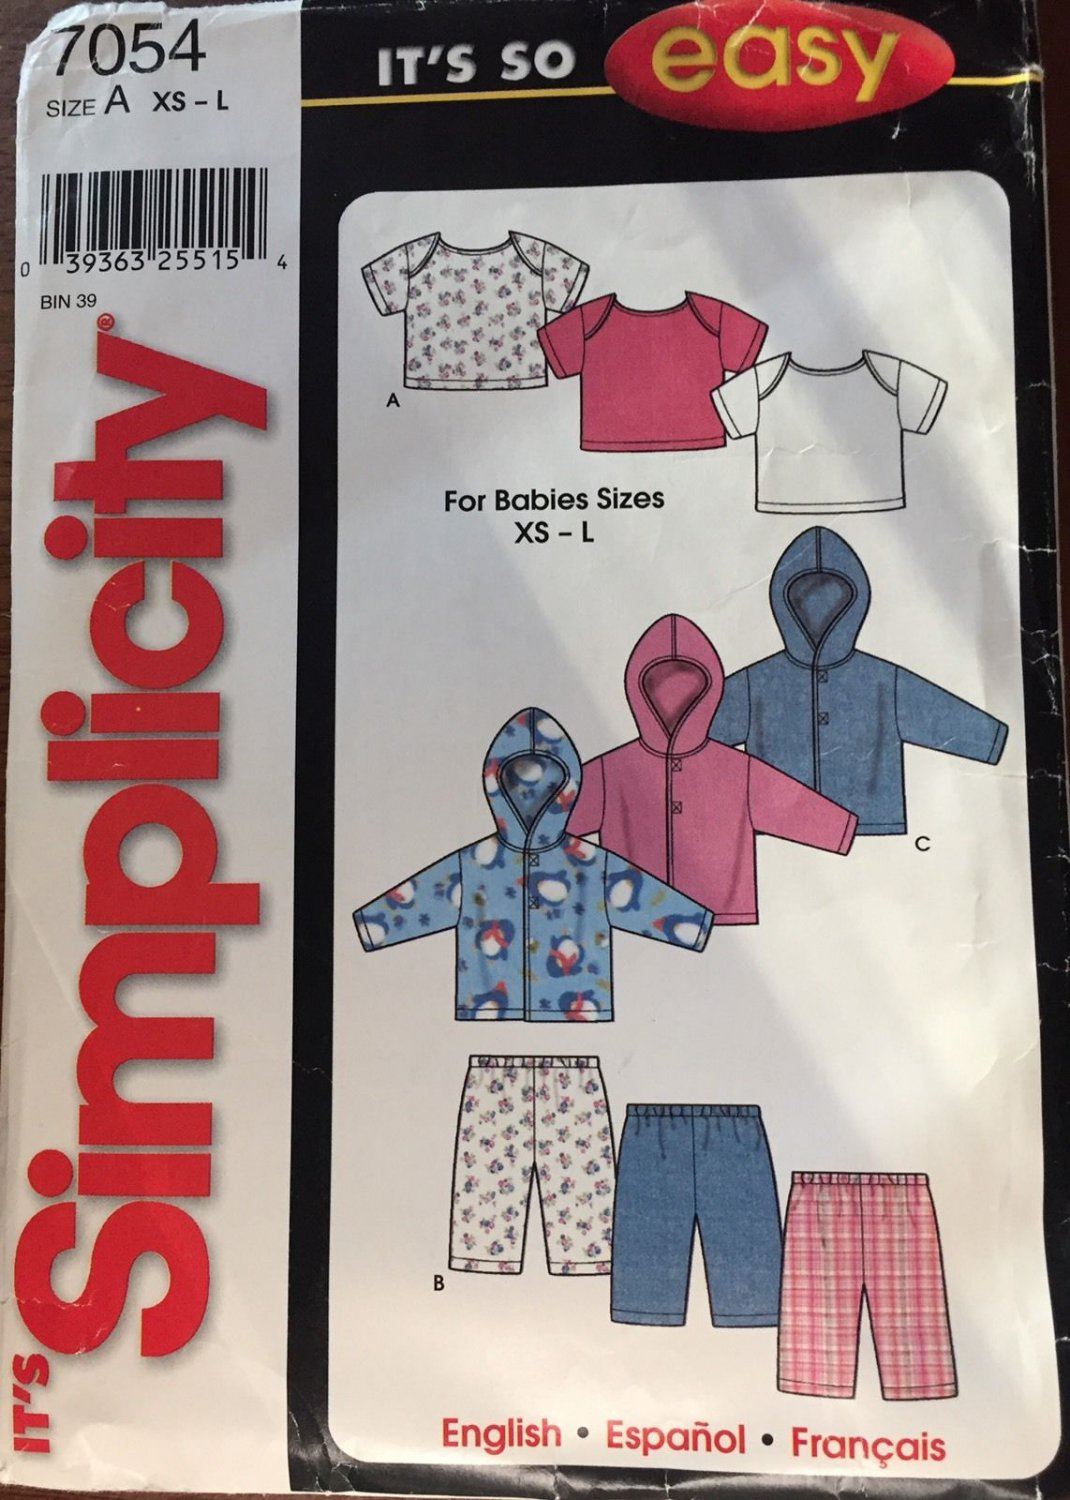 Simplicity Sewing Pattern 7054 Baby Jacket Pants Top XS-L  1-18 m. It's so Easy